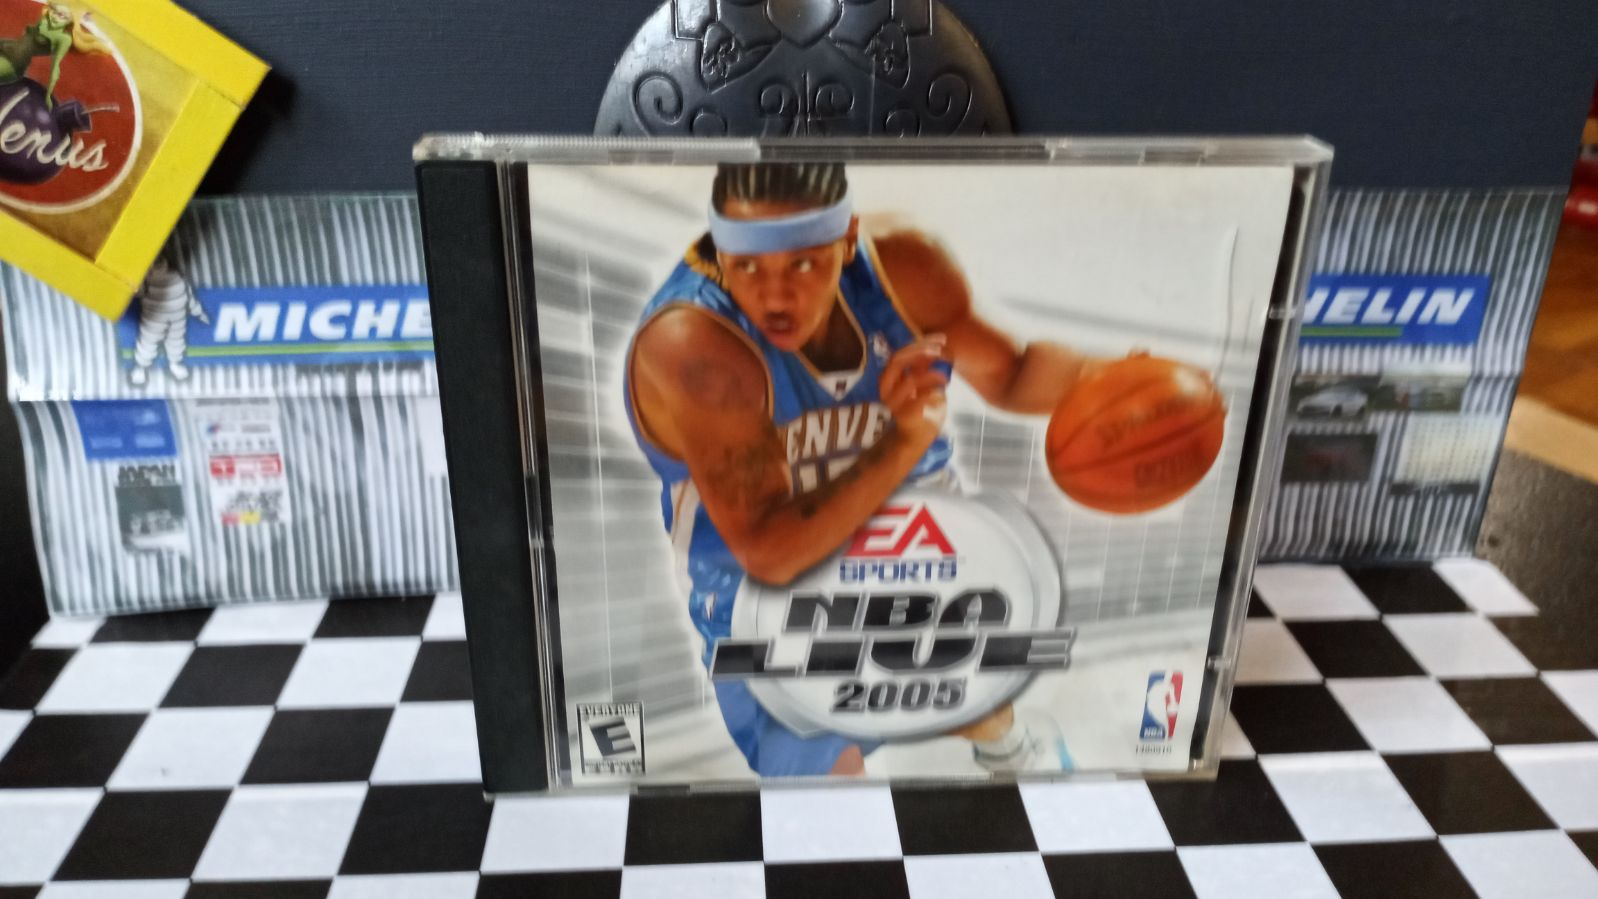 PC - CD NBA LIVE 2005 EA SPORTS games